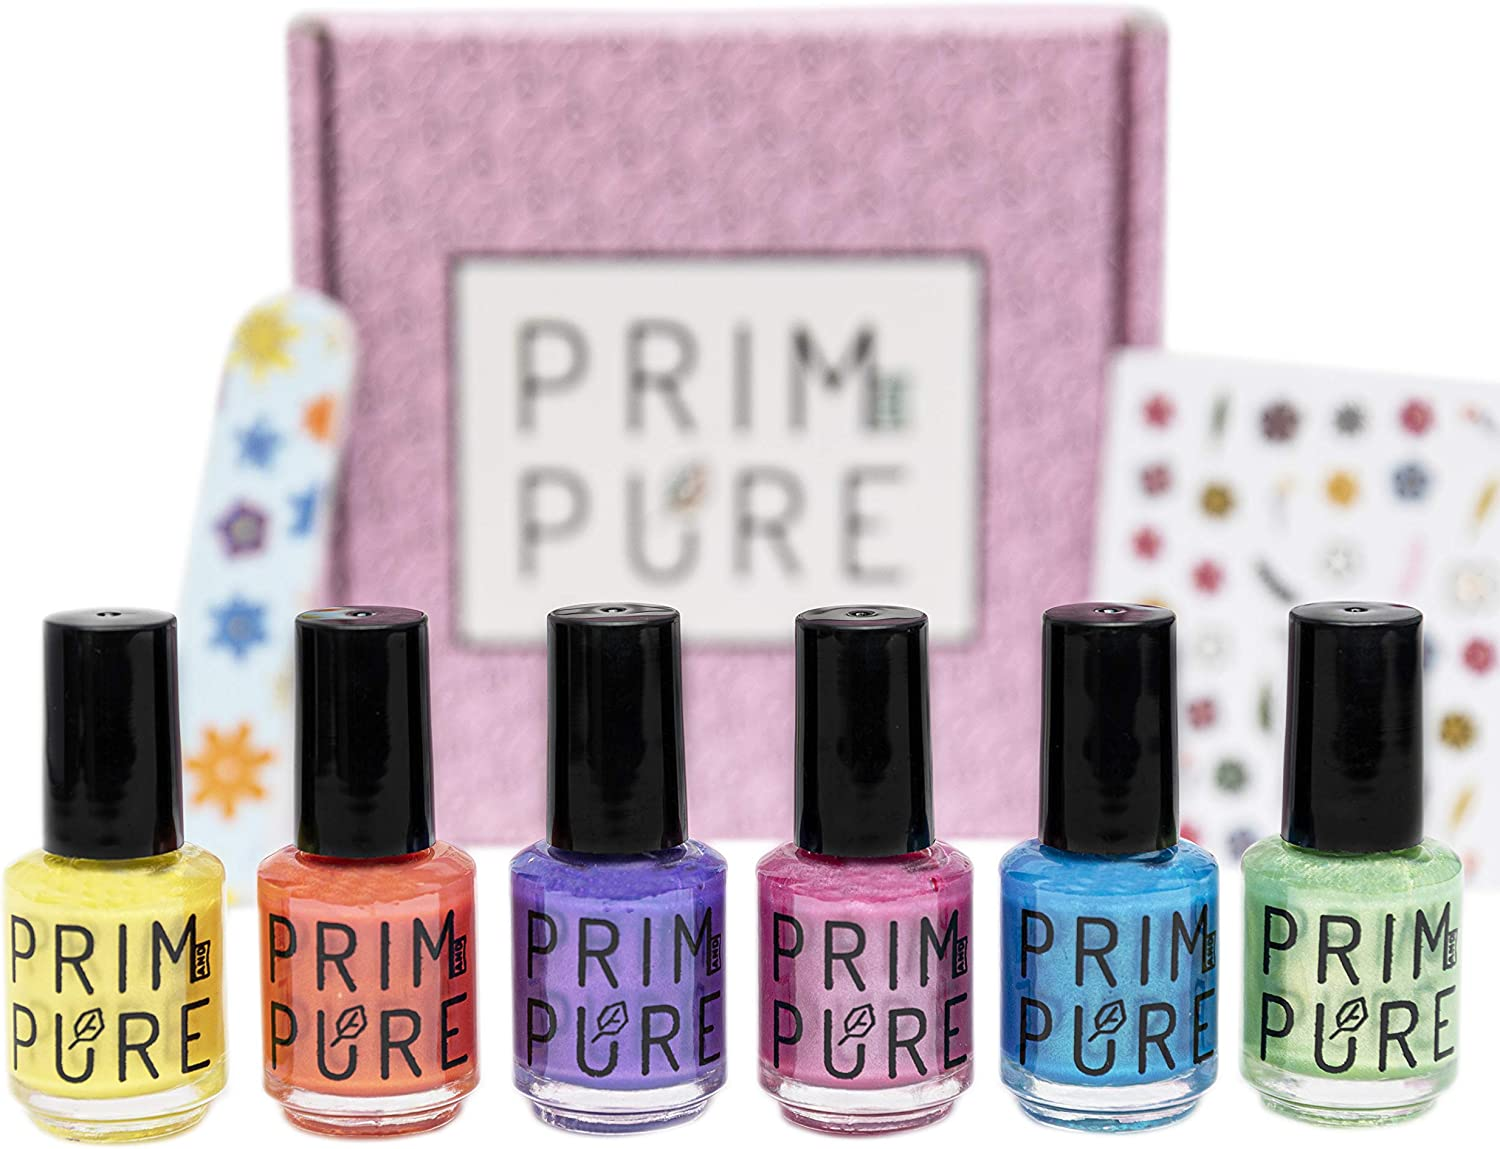 Amazon Com Prim And Pure Nail Polish Set Made For Kids Nail Polish For Children Kid Safe Fashion Solution Peel Off Non Toxic Formula 6 Pack Health Personal Care